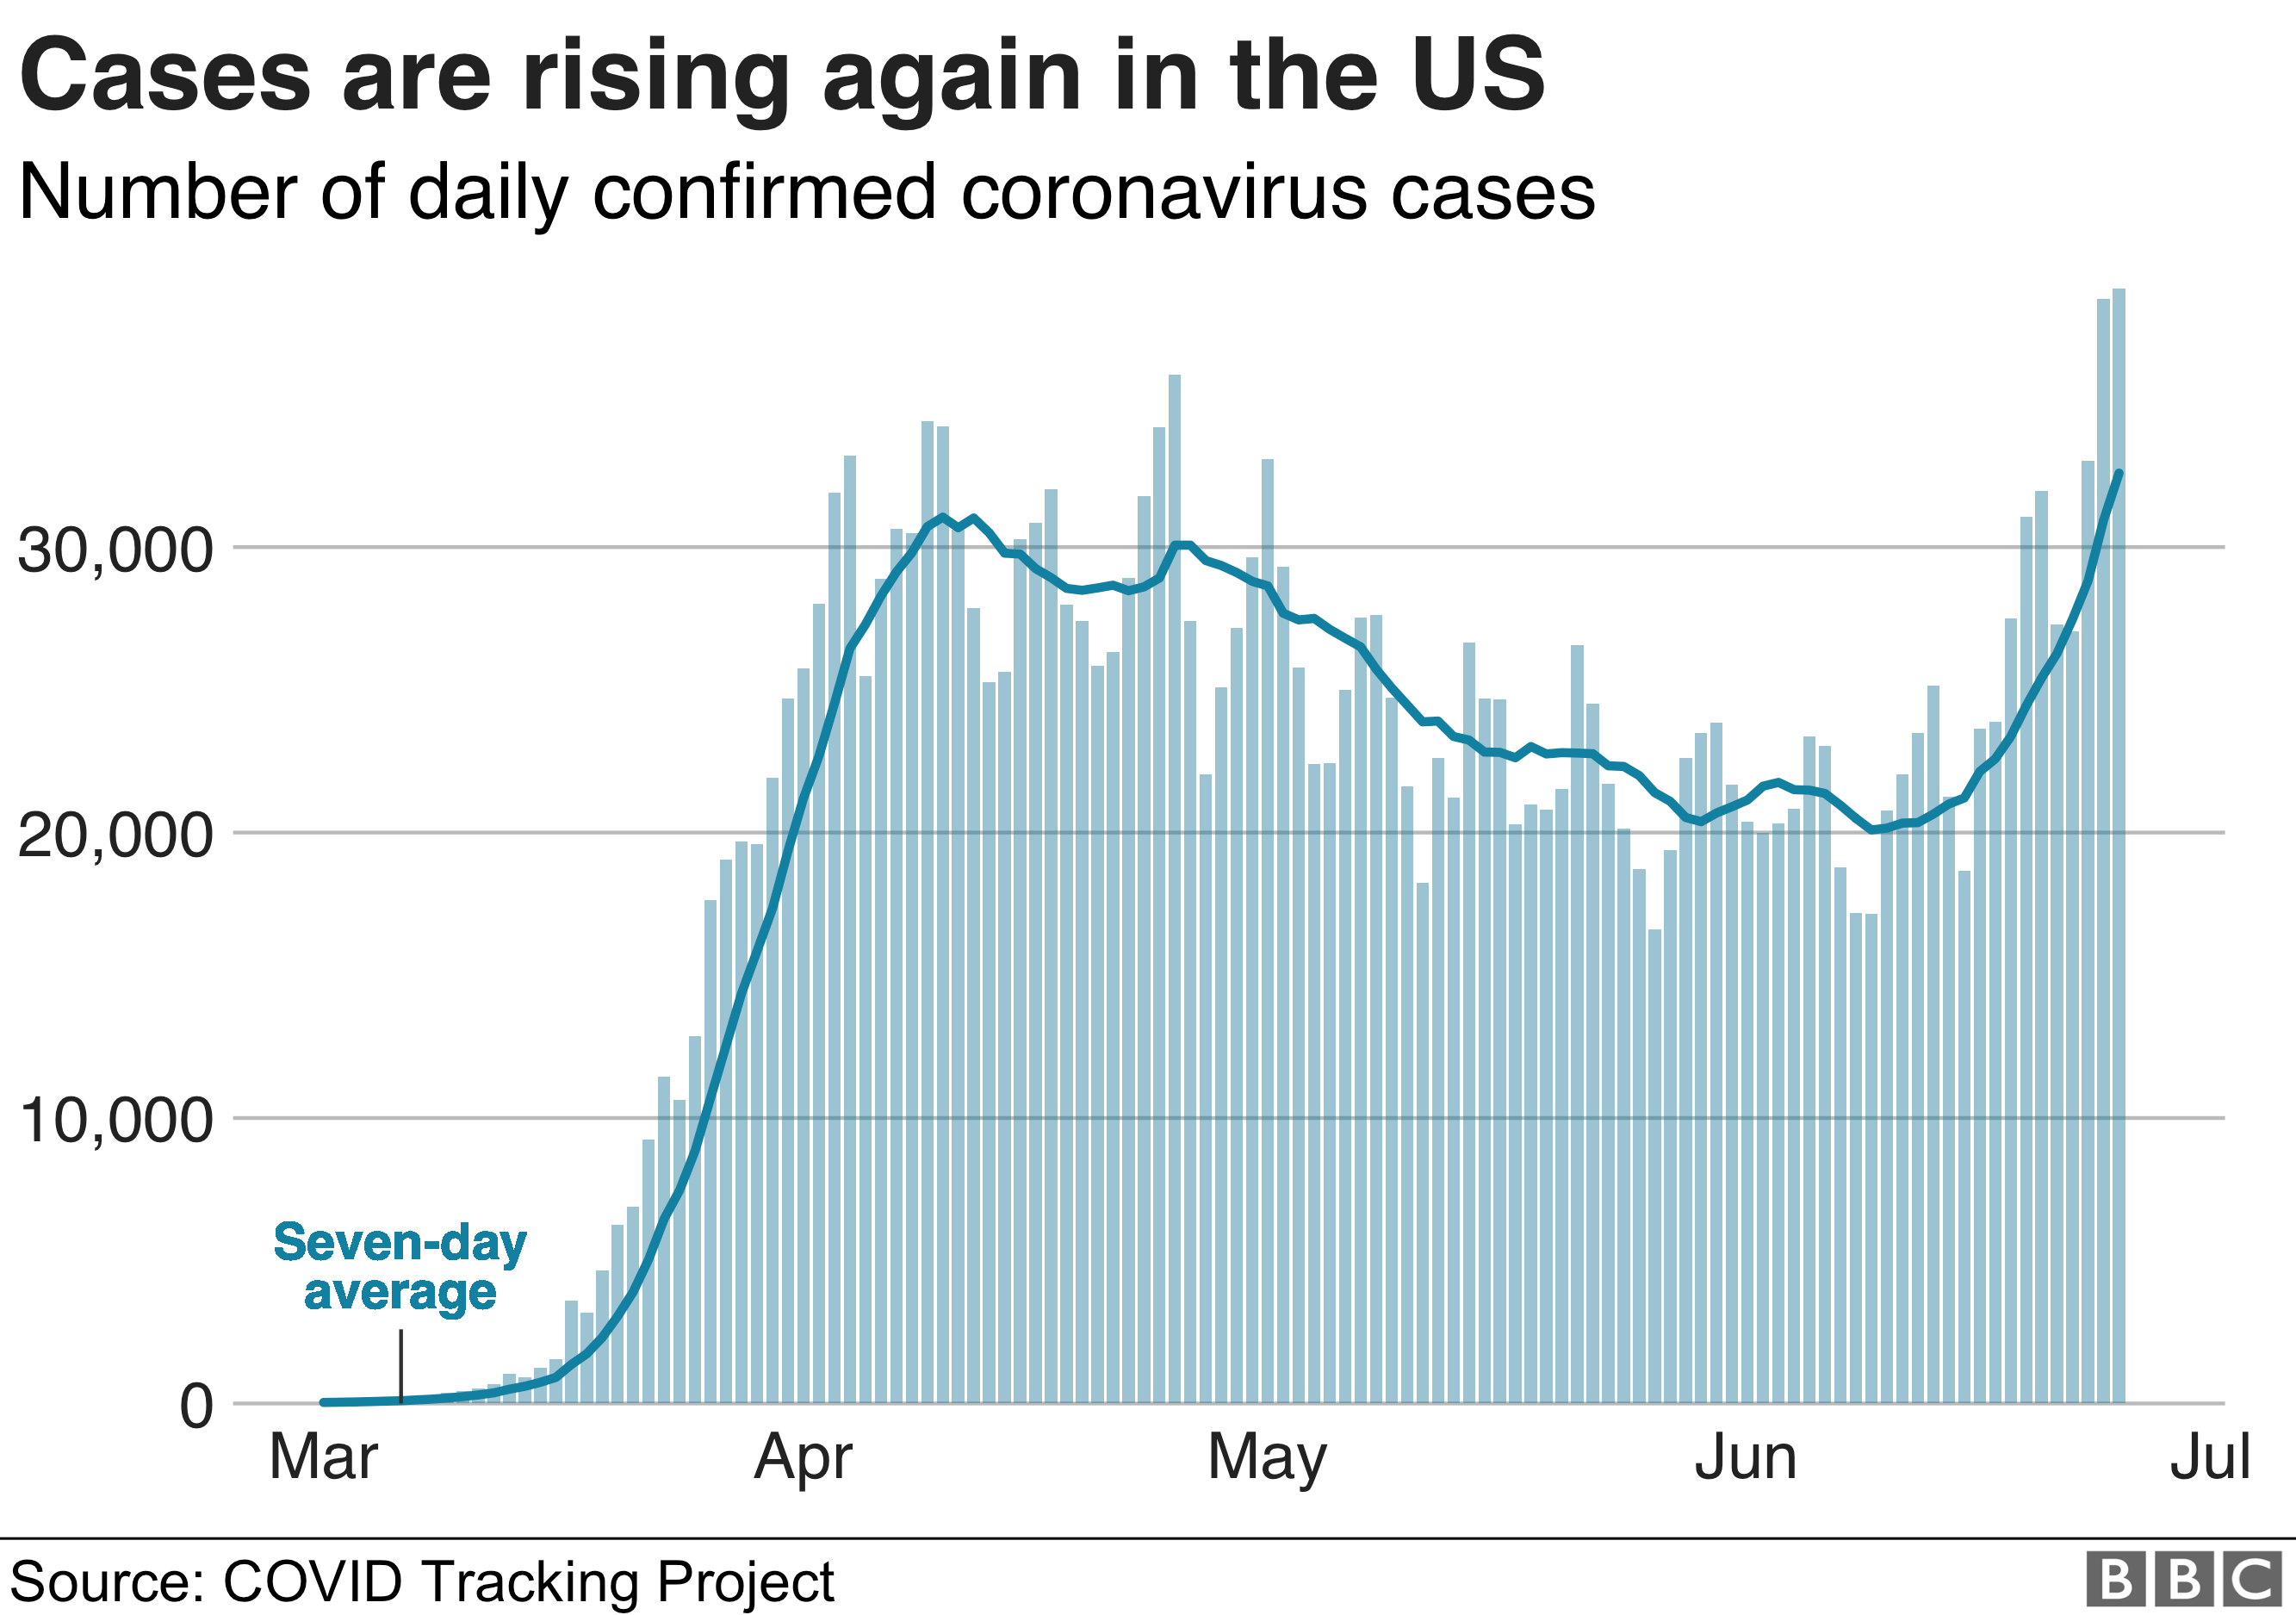 Chart showing the number of daily cases in the US